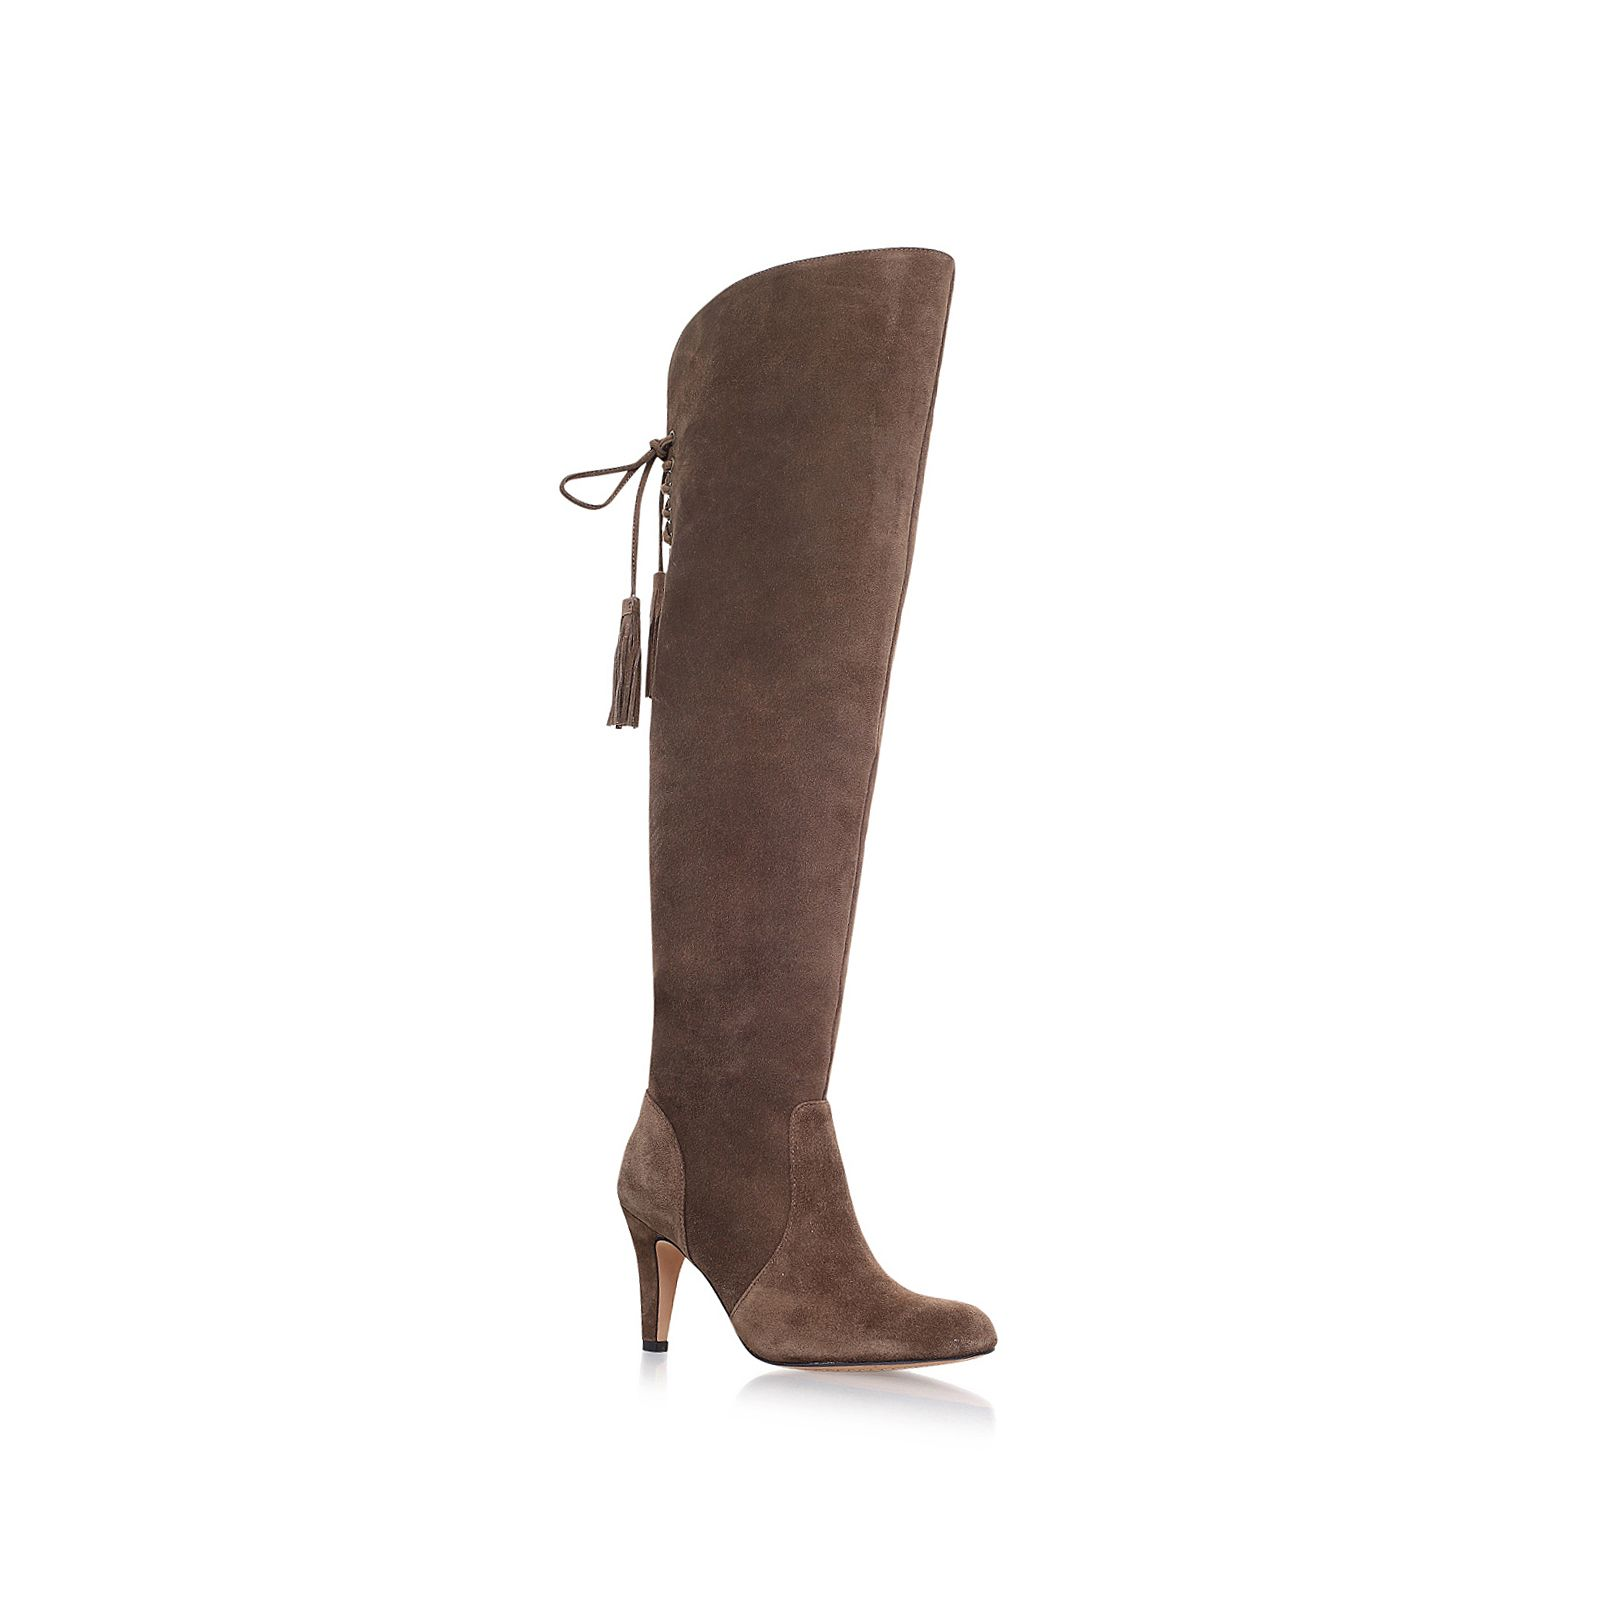 Vince Camuto Cherline high heel knee boots Taupe